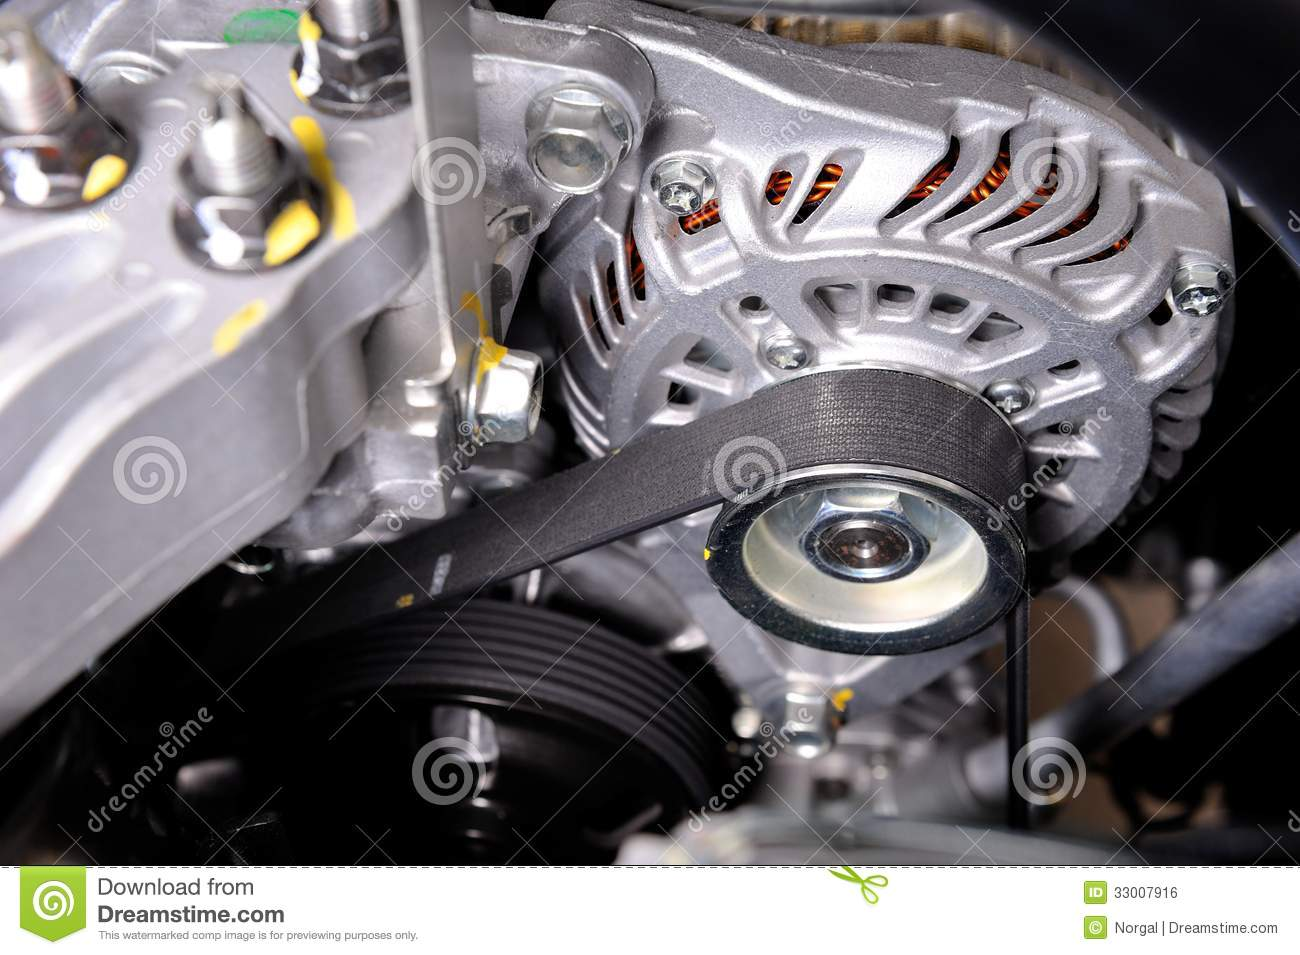 timing of a car diagram of a hybrid car timing belt royalty free stock image image 33007916